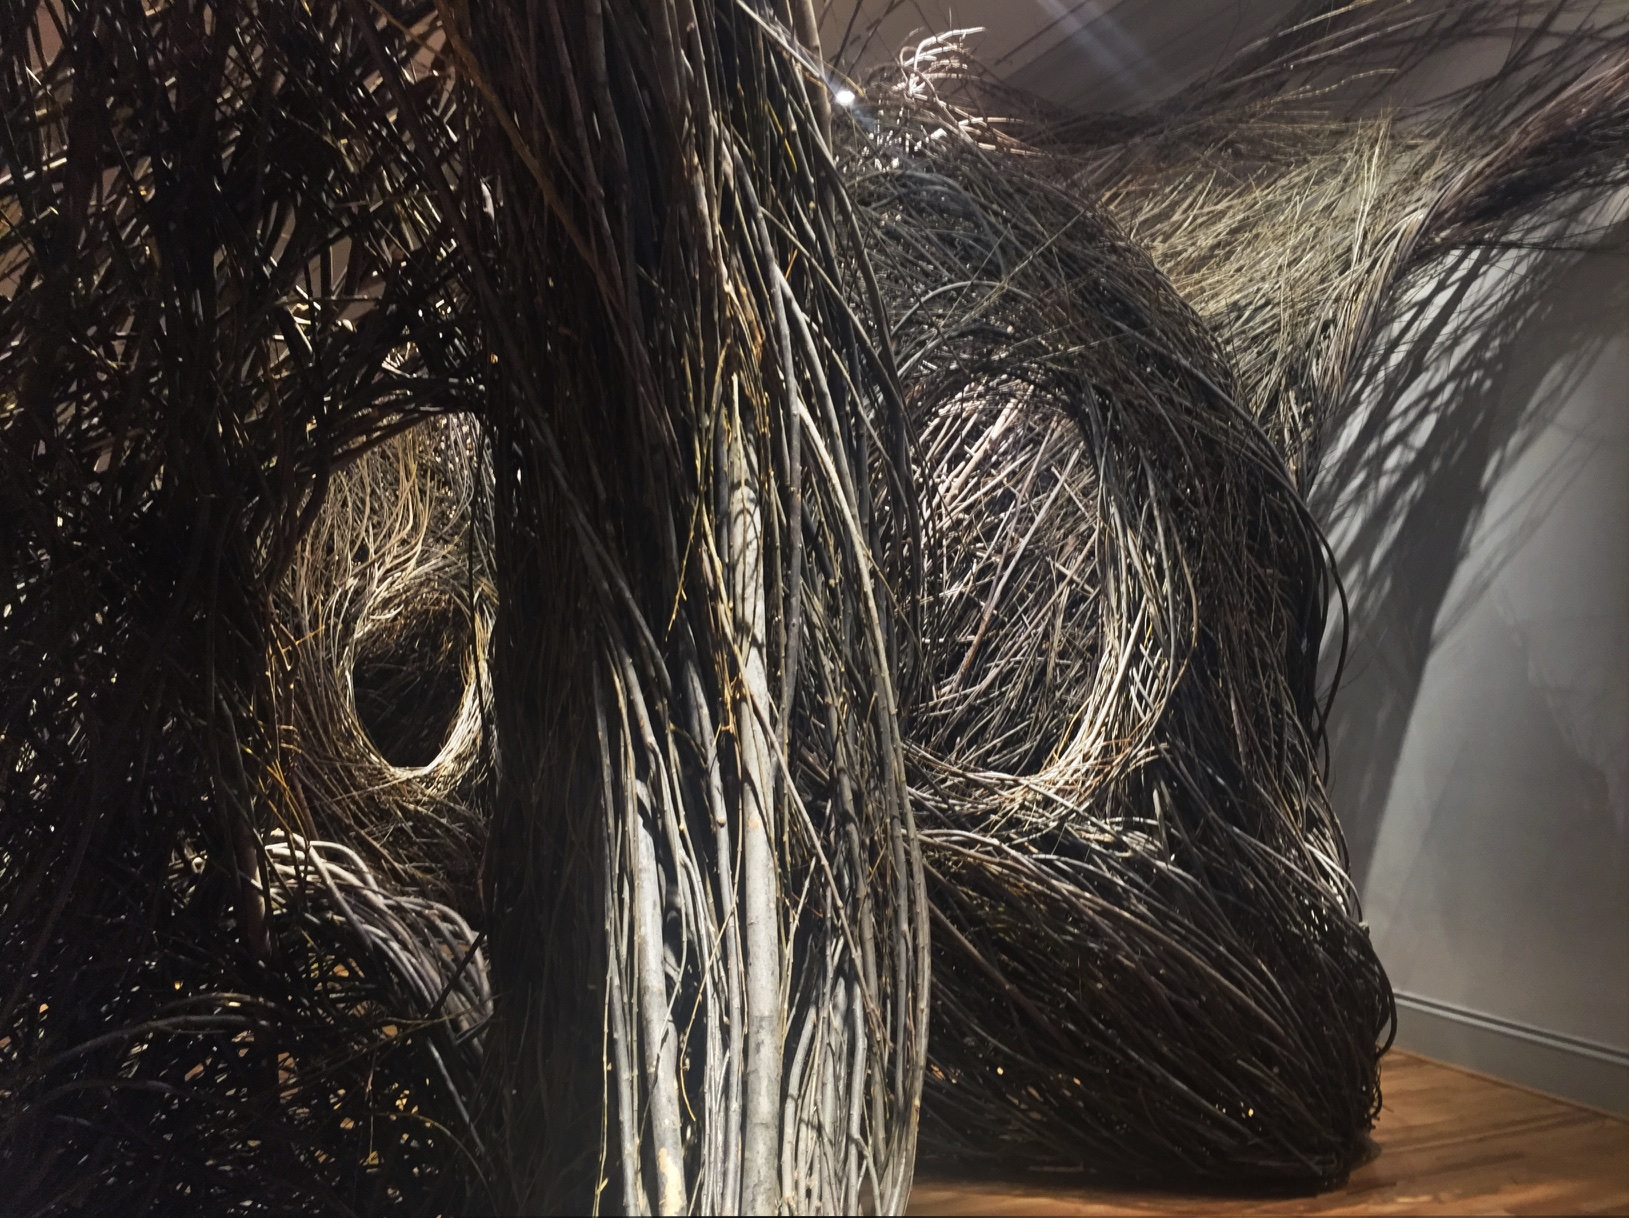 Renwick Gallery: WONDER: Opening Exhibit Patrick Dougherty